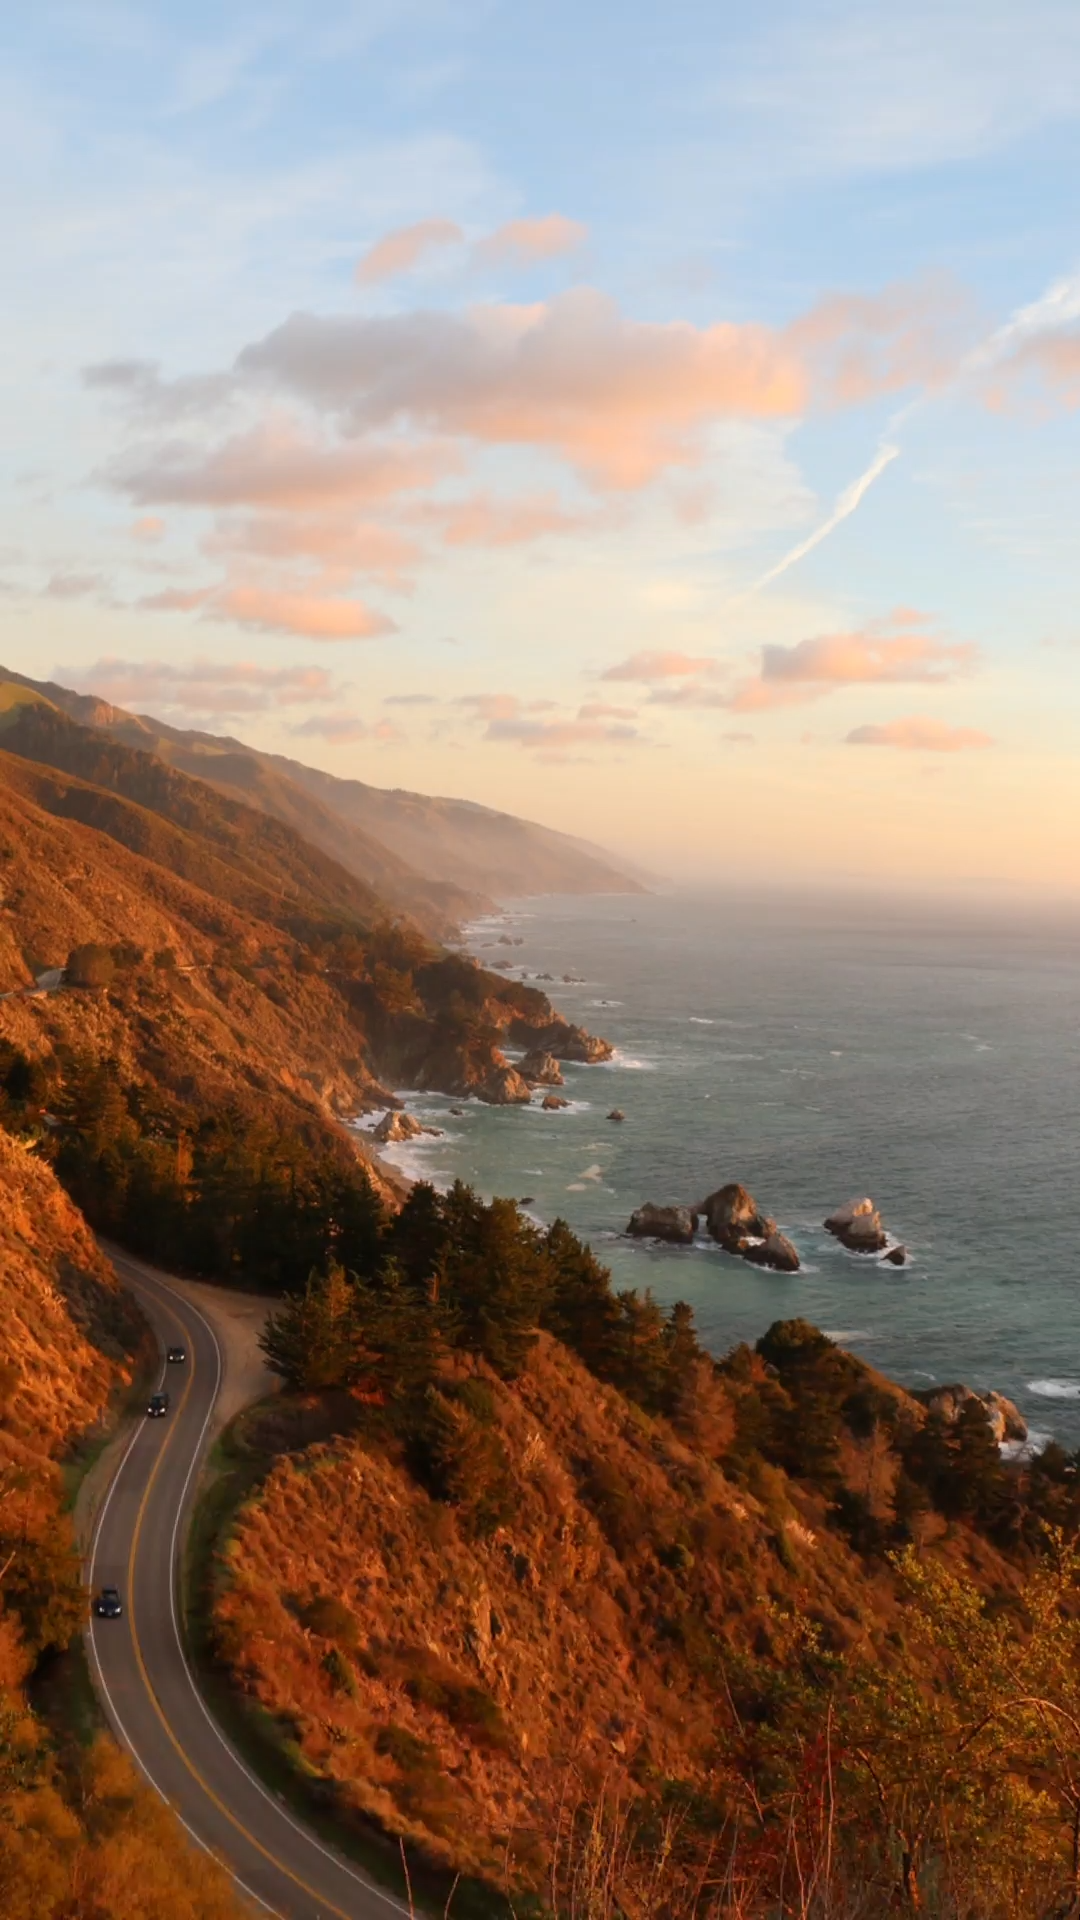 Get ready to rock your West Coast Road Trip. Traverse the length of to the USA right up to Canada with this 2 weeks West Coast road trip itinerary. What to see, where to visit, where to stay  and how to budget for your epic road trip. Let's go! #roadtrip #USA #wanderlust #vacation